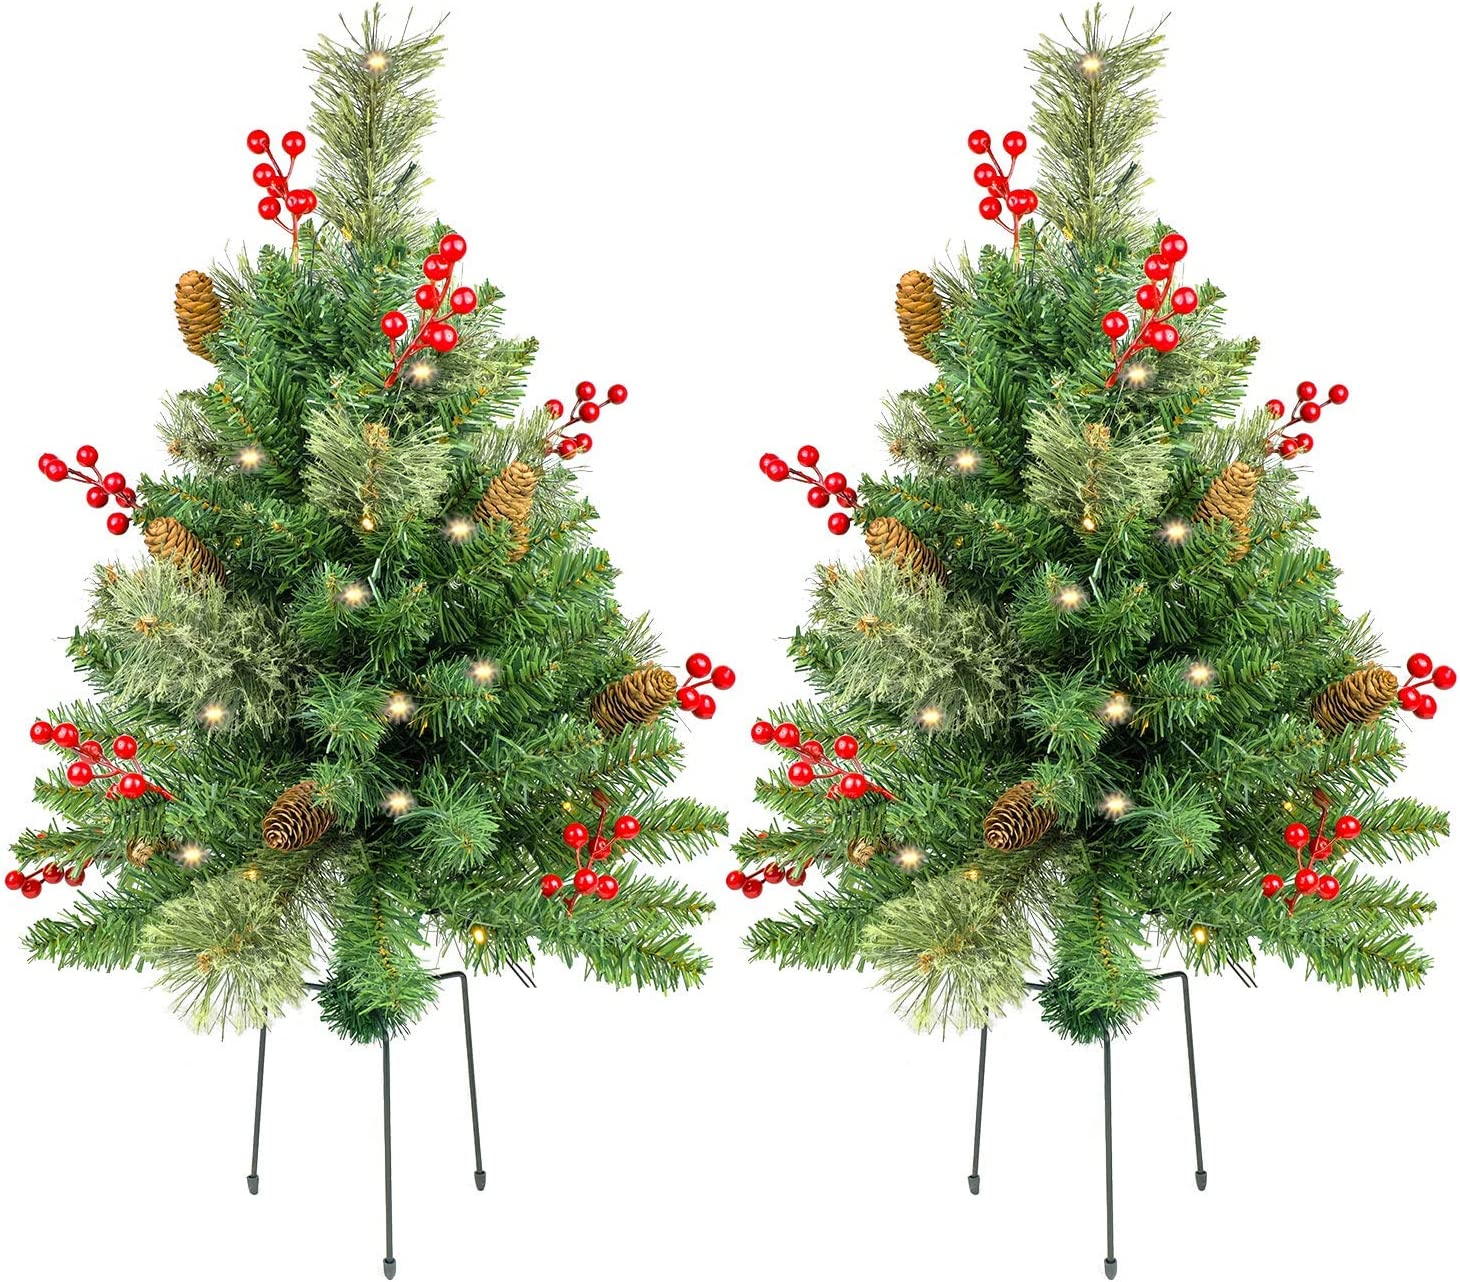 HomeKaren Christmas Tree 30 inch Prelit 2 Set Pathway Porch Christmas Trees Pre-Light LED Battery Operated Outdoor Xmas Decor for Entrance Driveway, Yard, Garden, Red Berries, Pine Cones